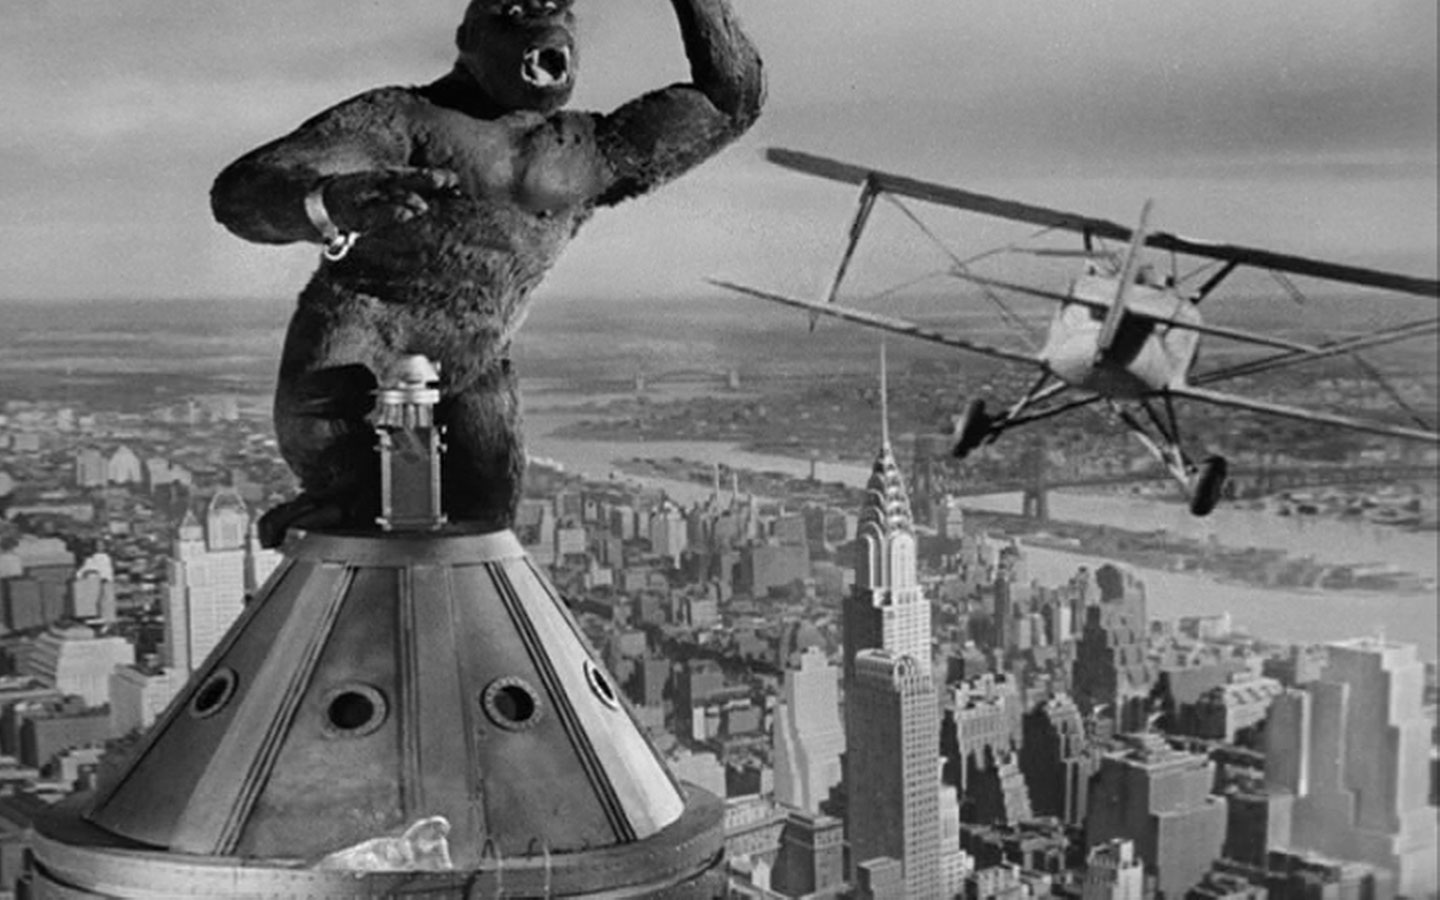 Kong takes a swipe at an attacking airplane